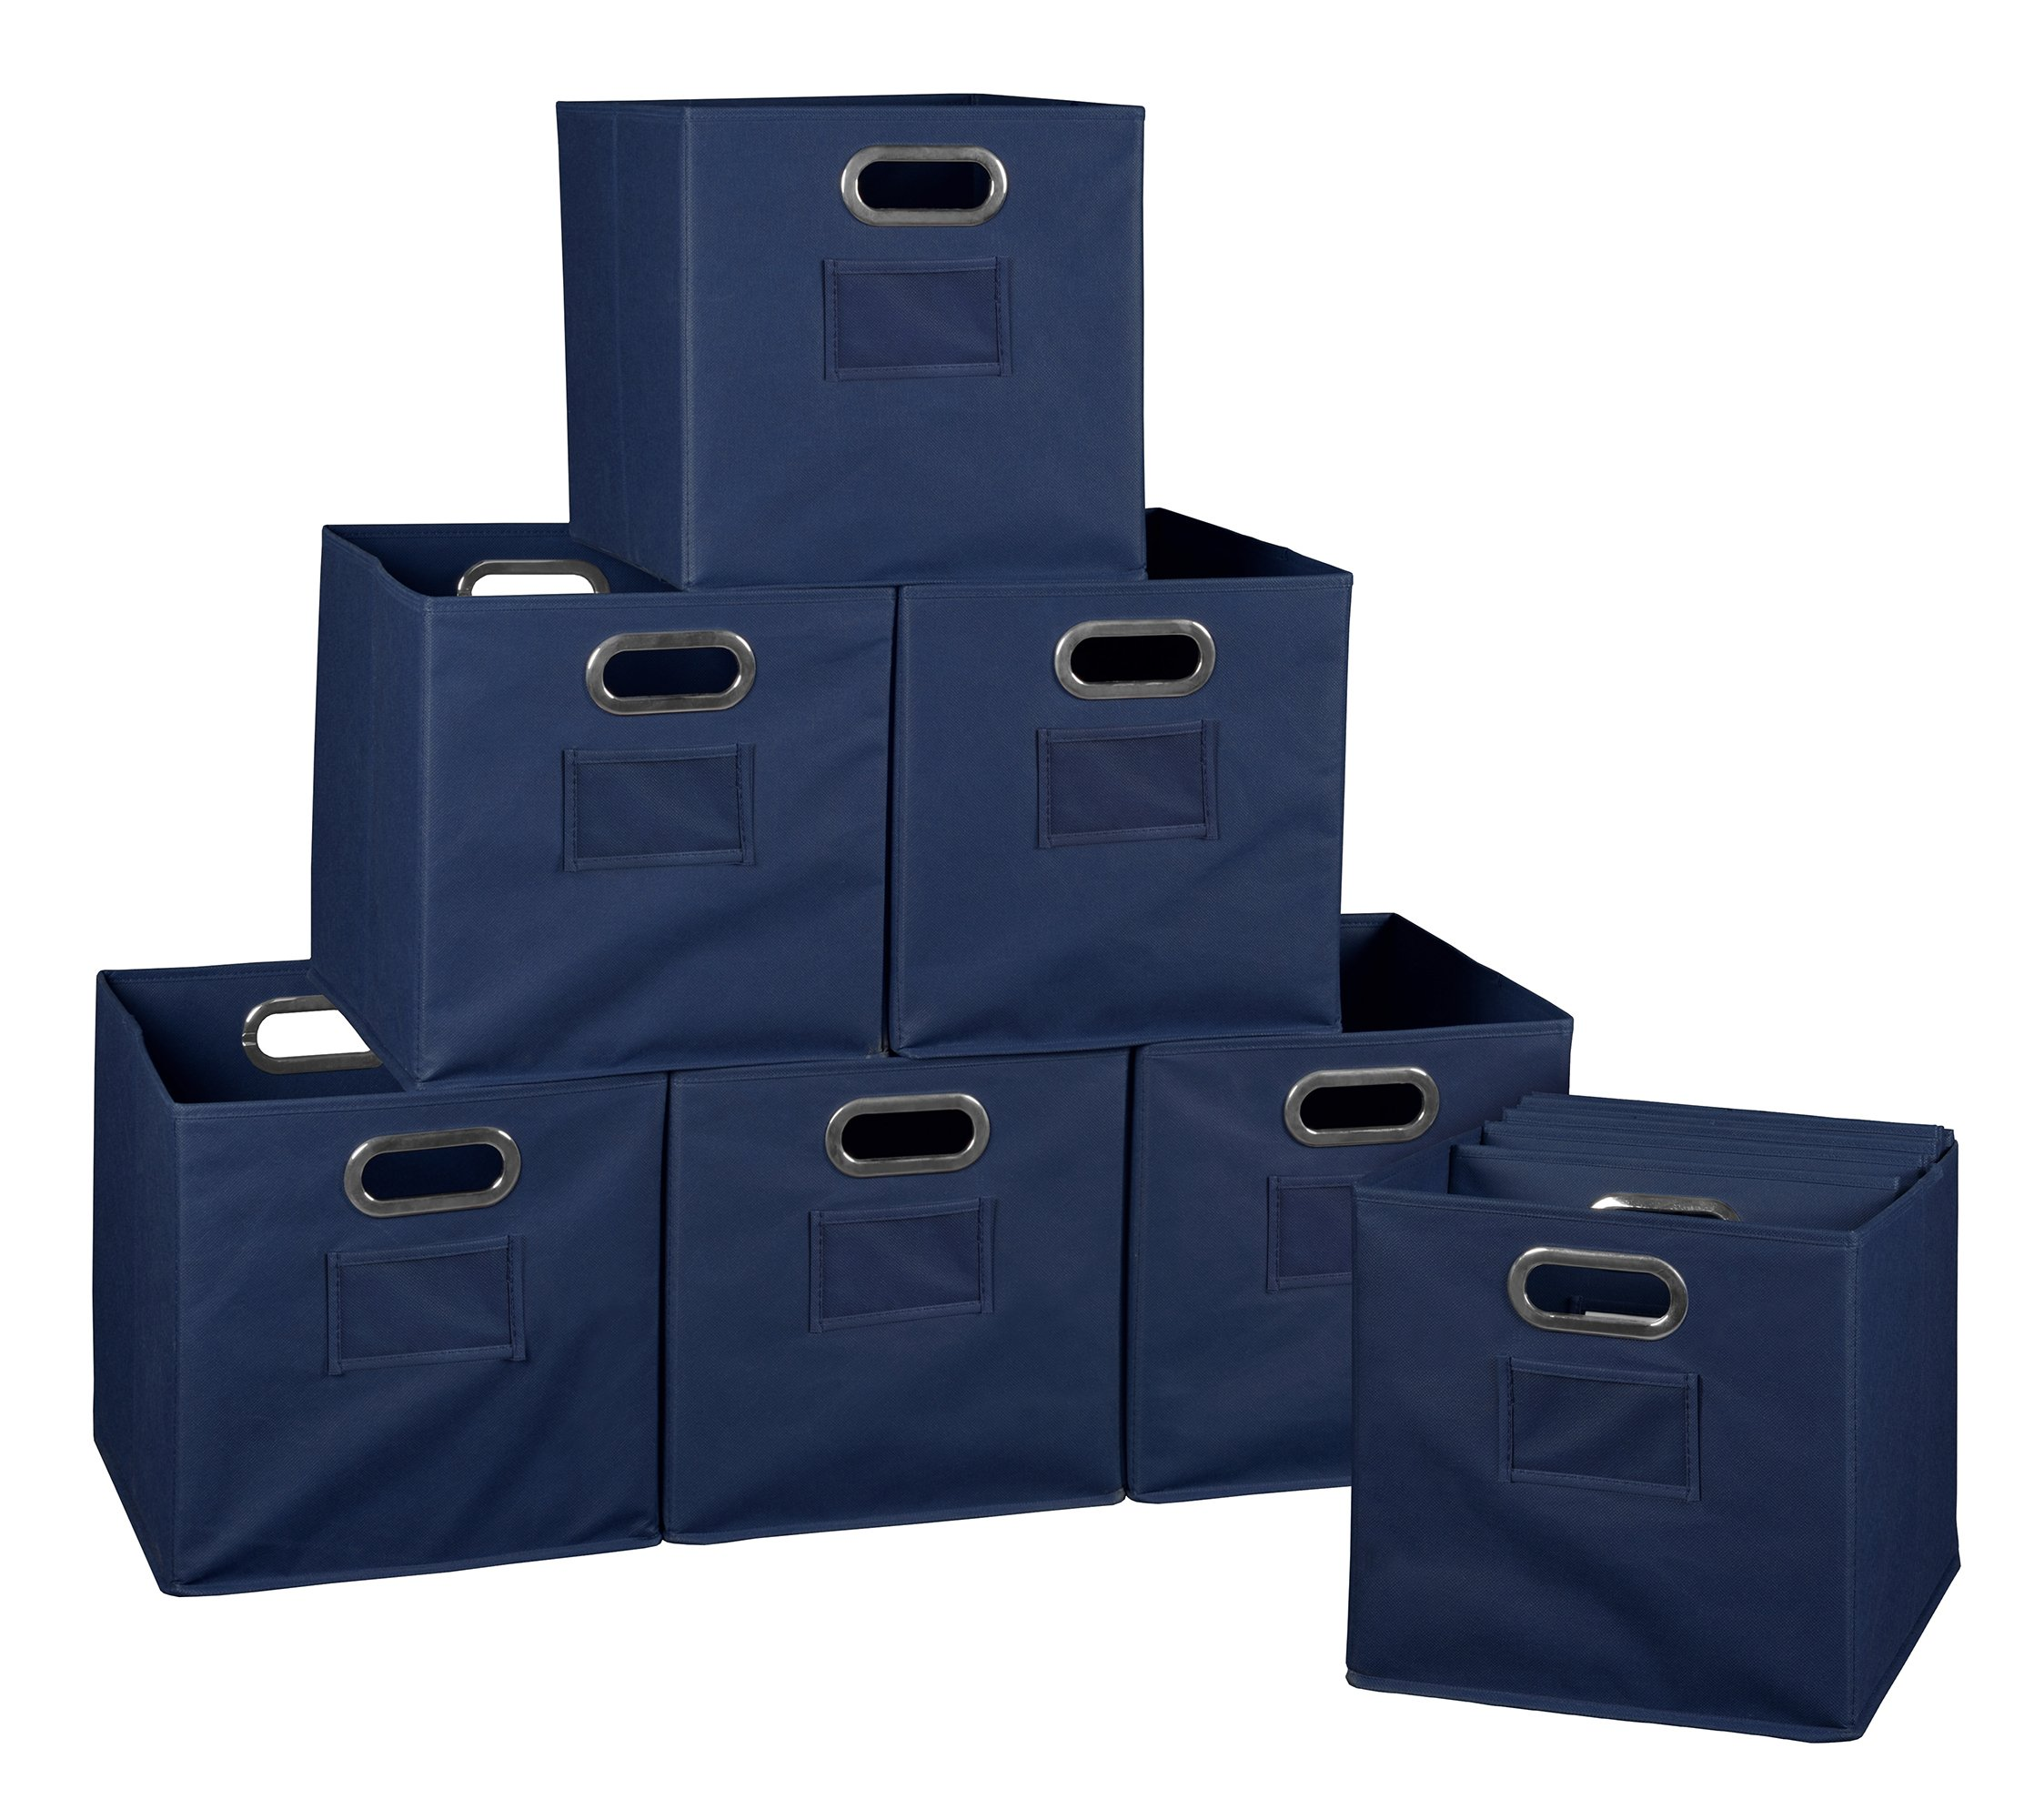 Set of 12 Cubo Foldable Fabric Bins- Blue by Unknown